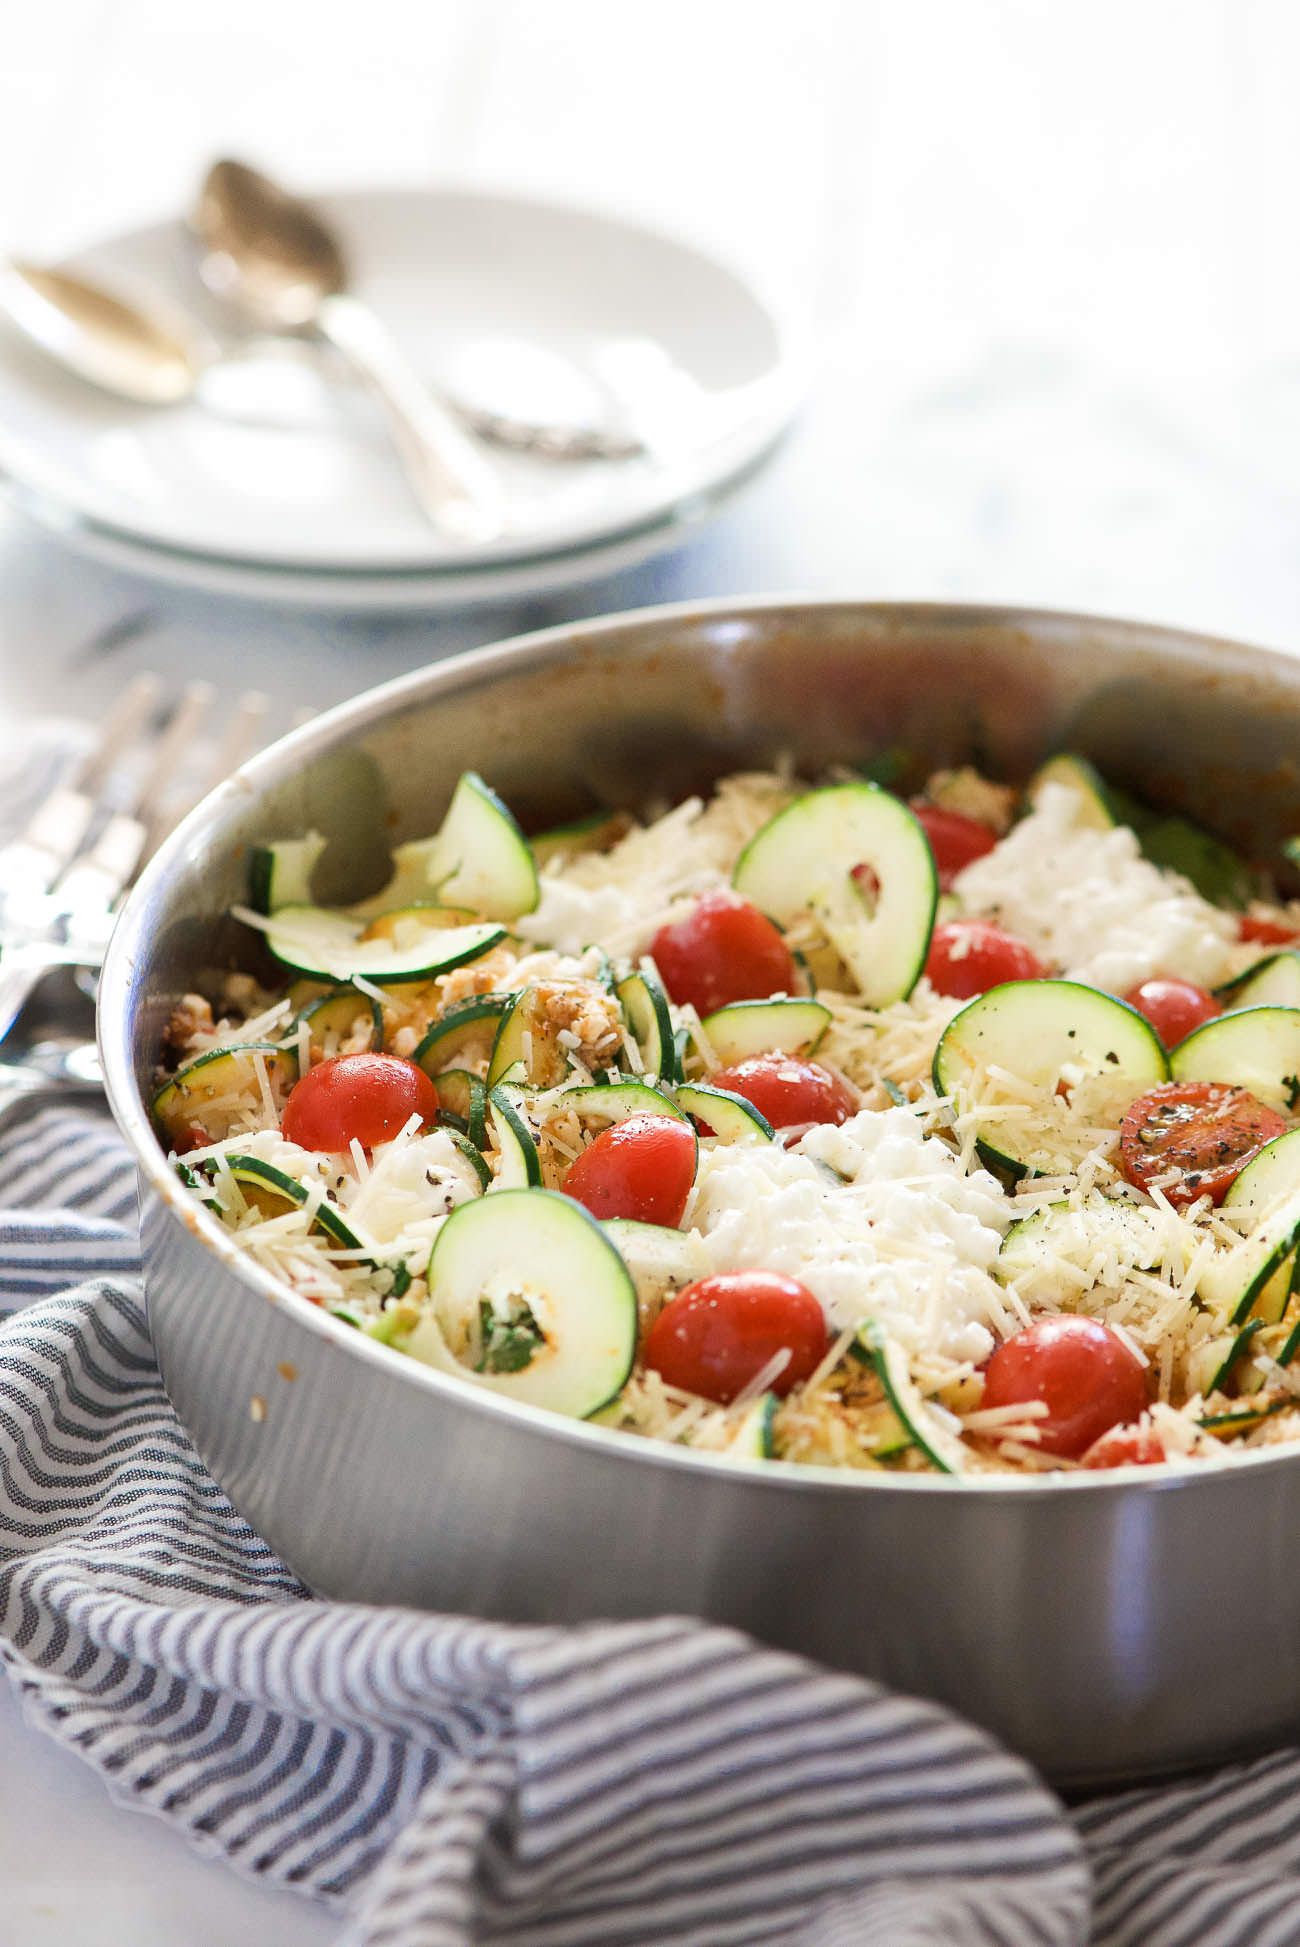 Spinach And Artichoke Skillet Zucchini Lasagna Is A Healthy, Low Carb Take  On Lasagna